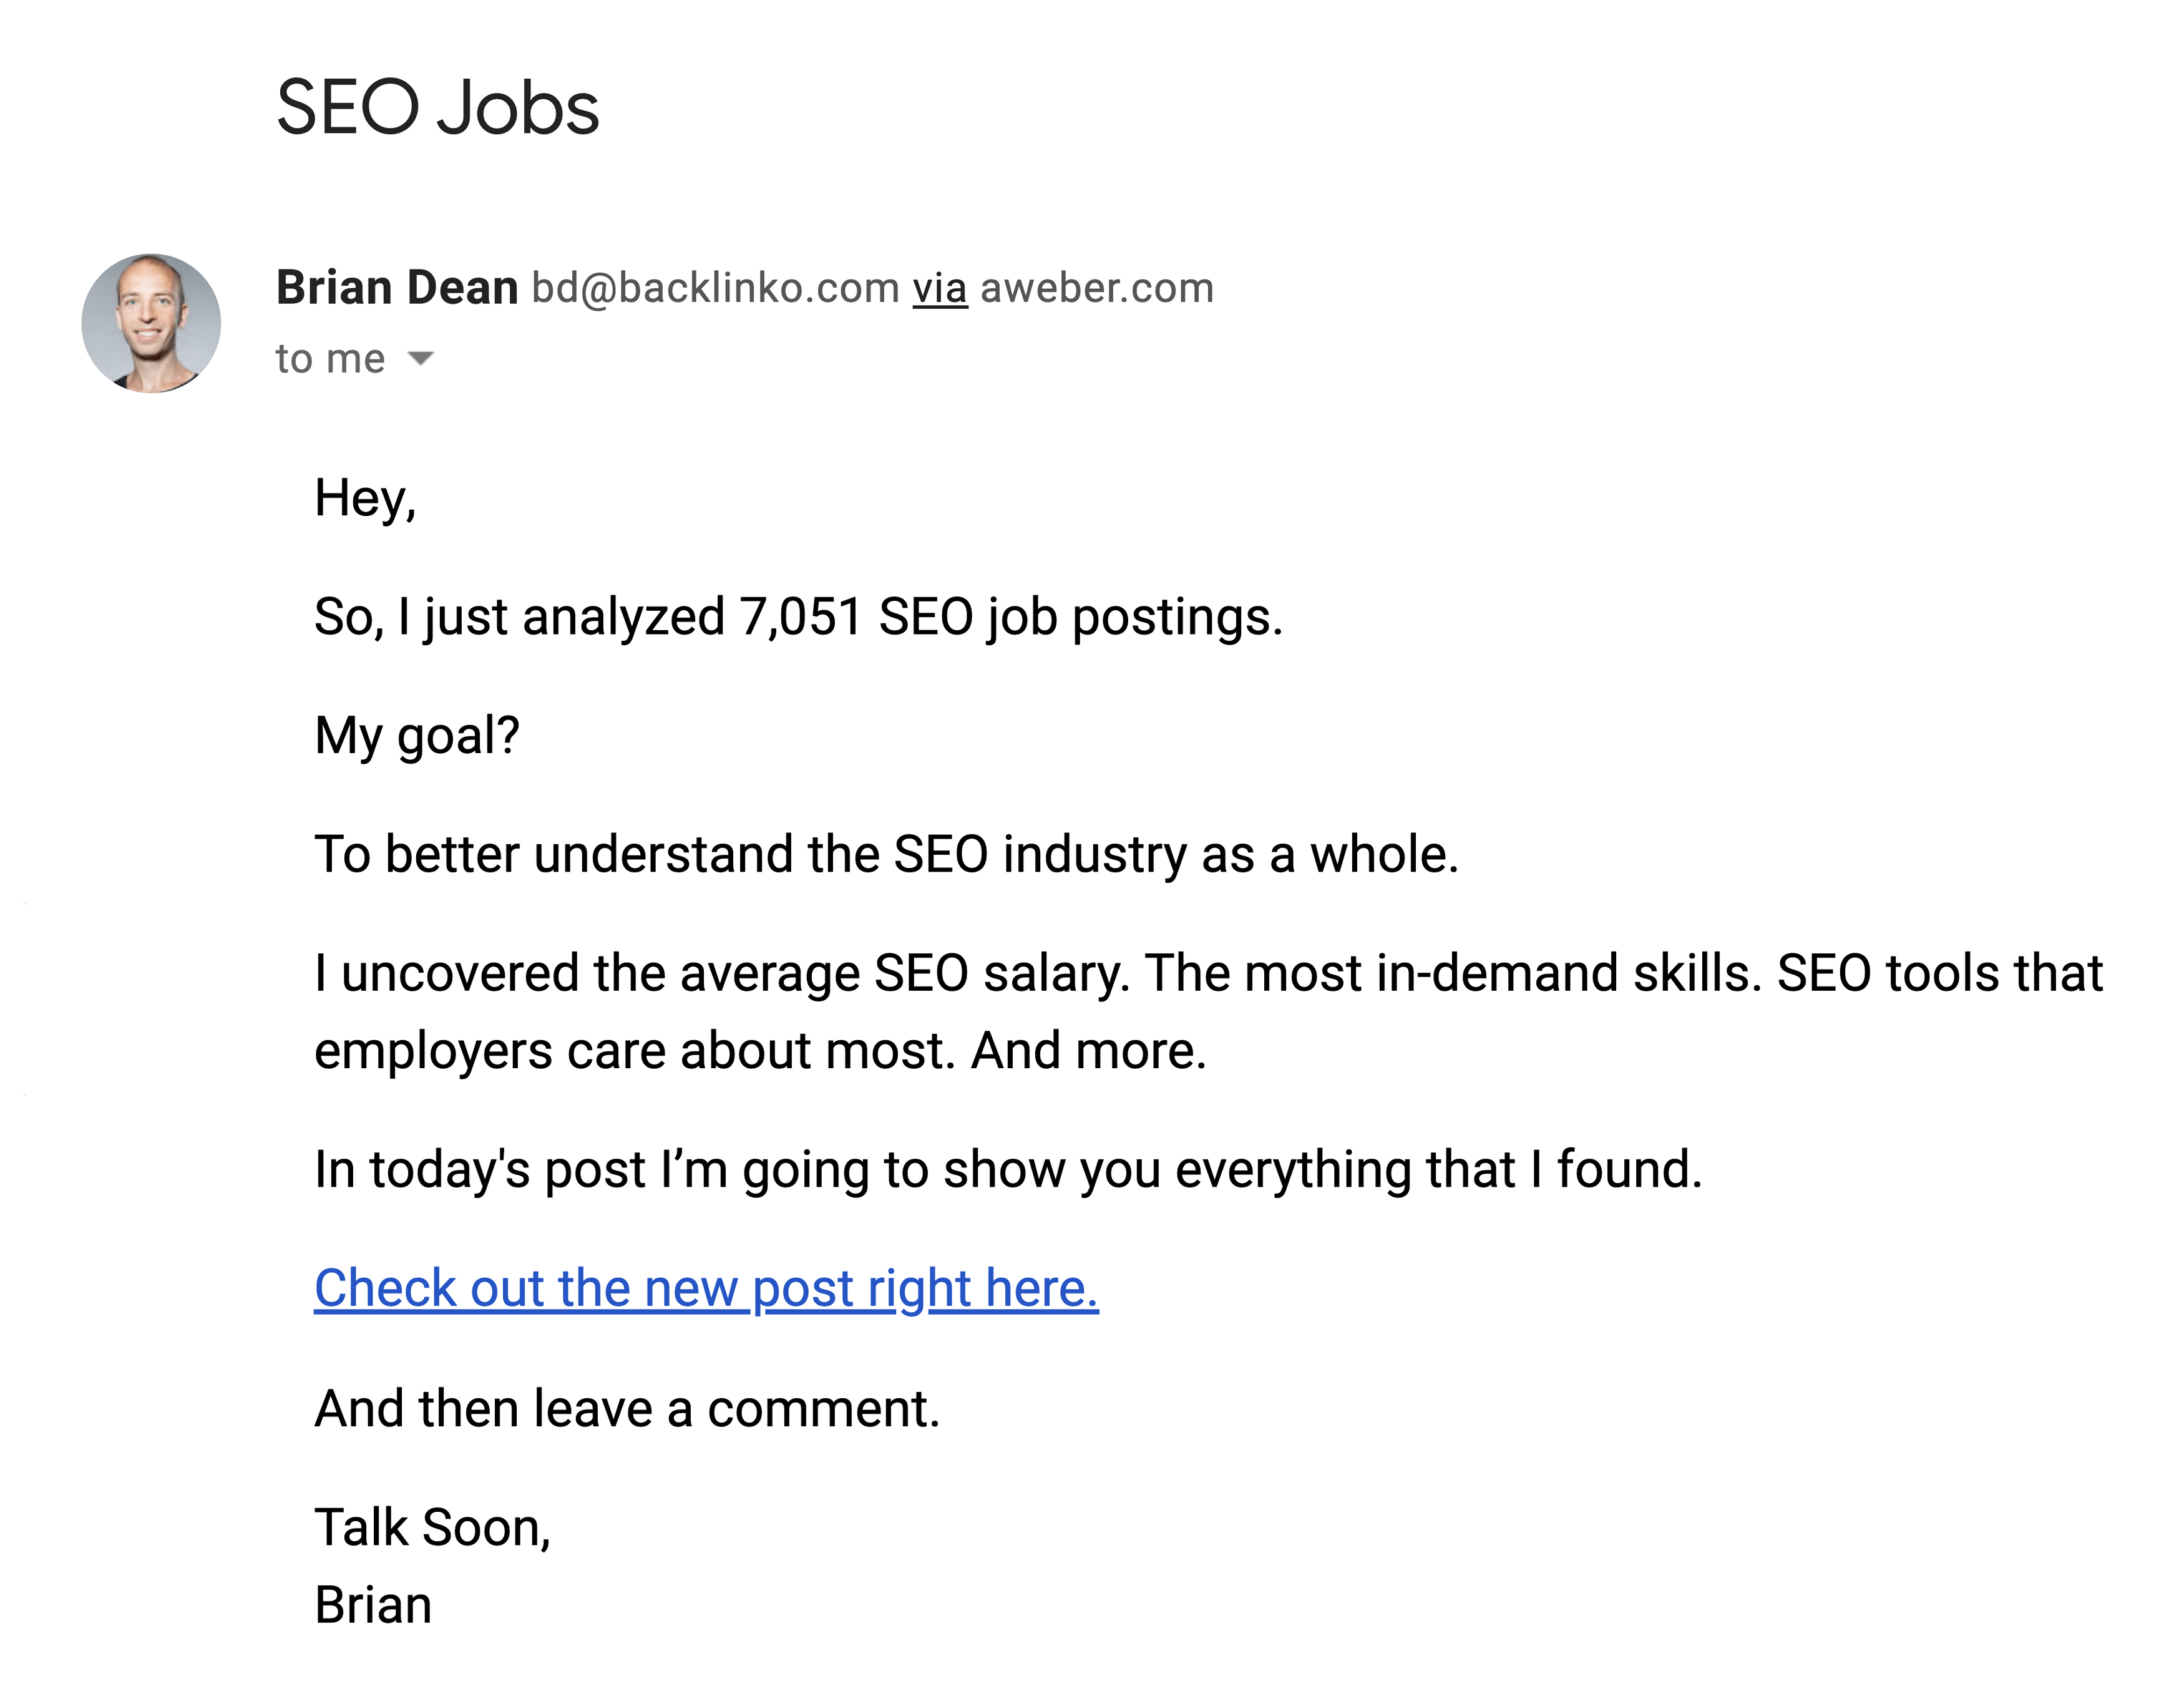 SEO Jobs Report Email